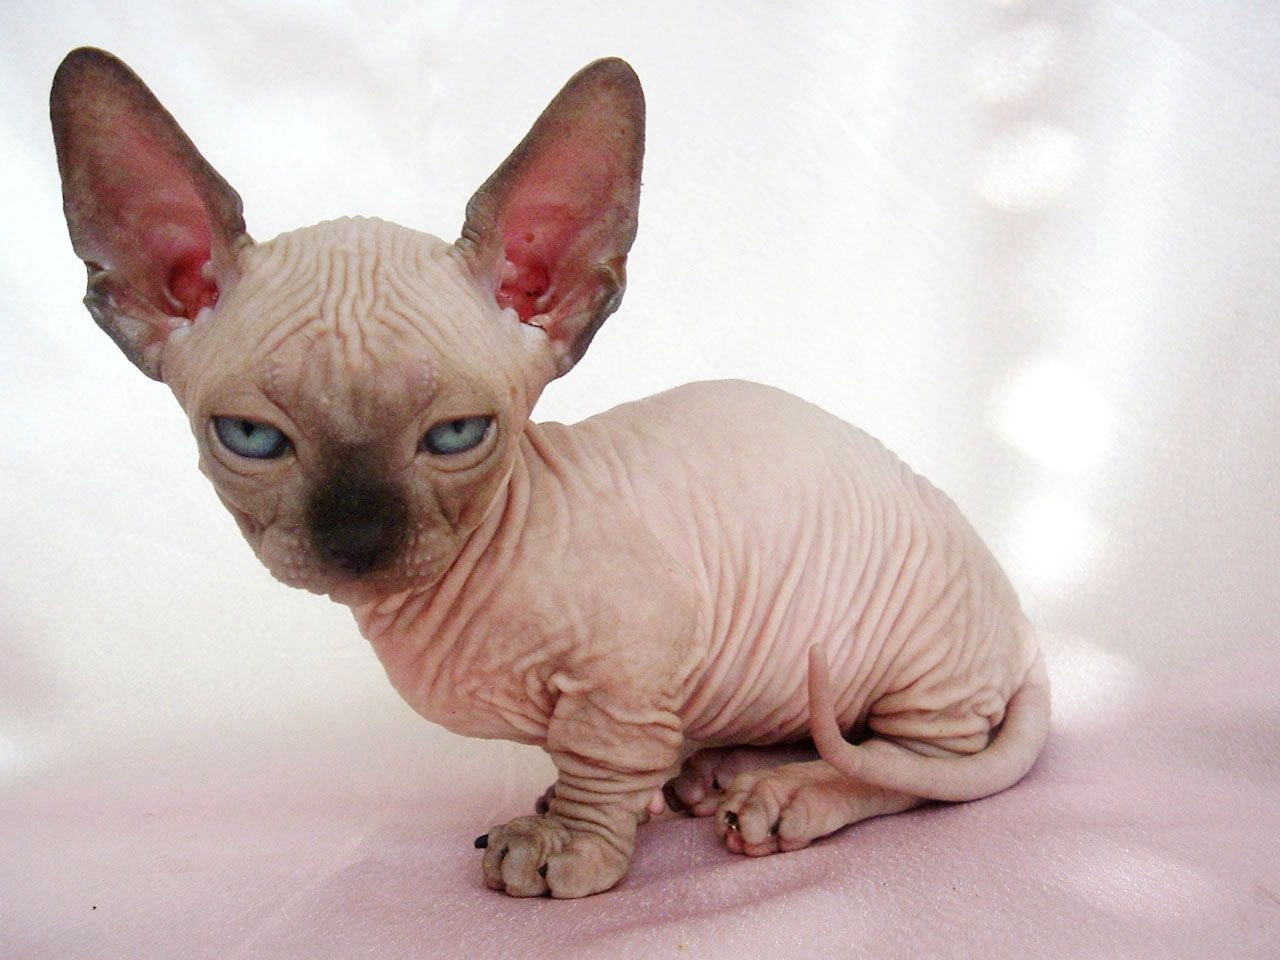 Sphynx Cat For Sale In Pa Hd Info About Sphynx Kitten Baby Wallpaper Hd Jpg 1280 960 Baby Hairless Cat Sphynx Cat Hairless Cat